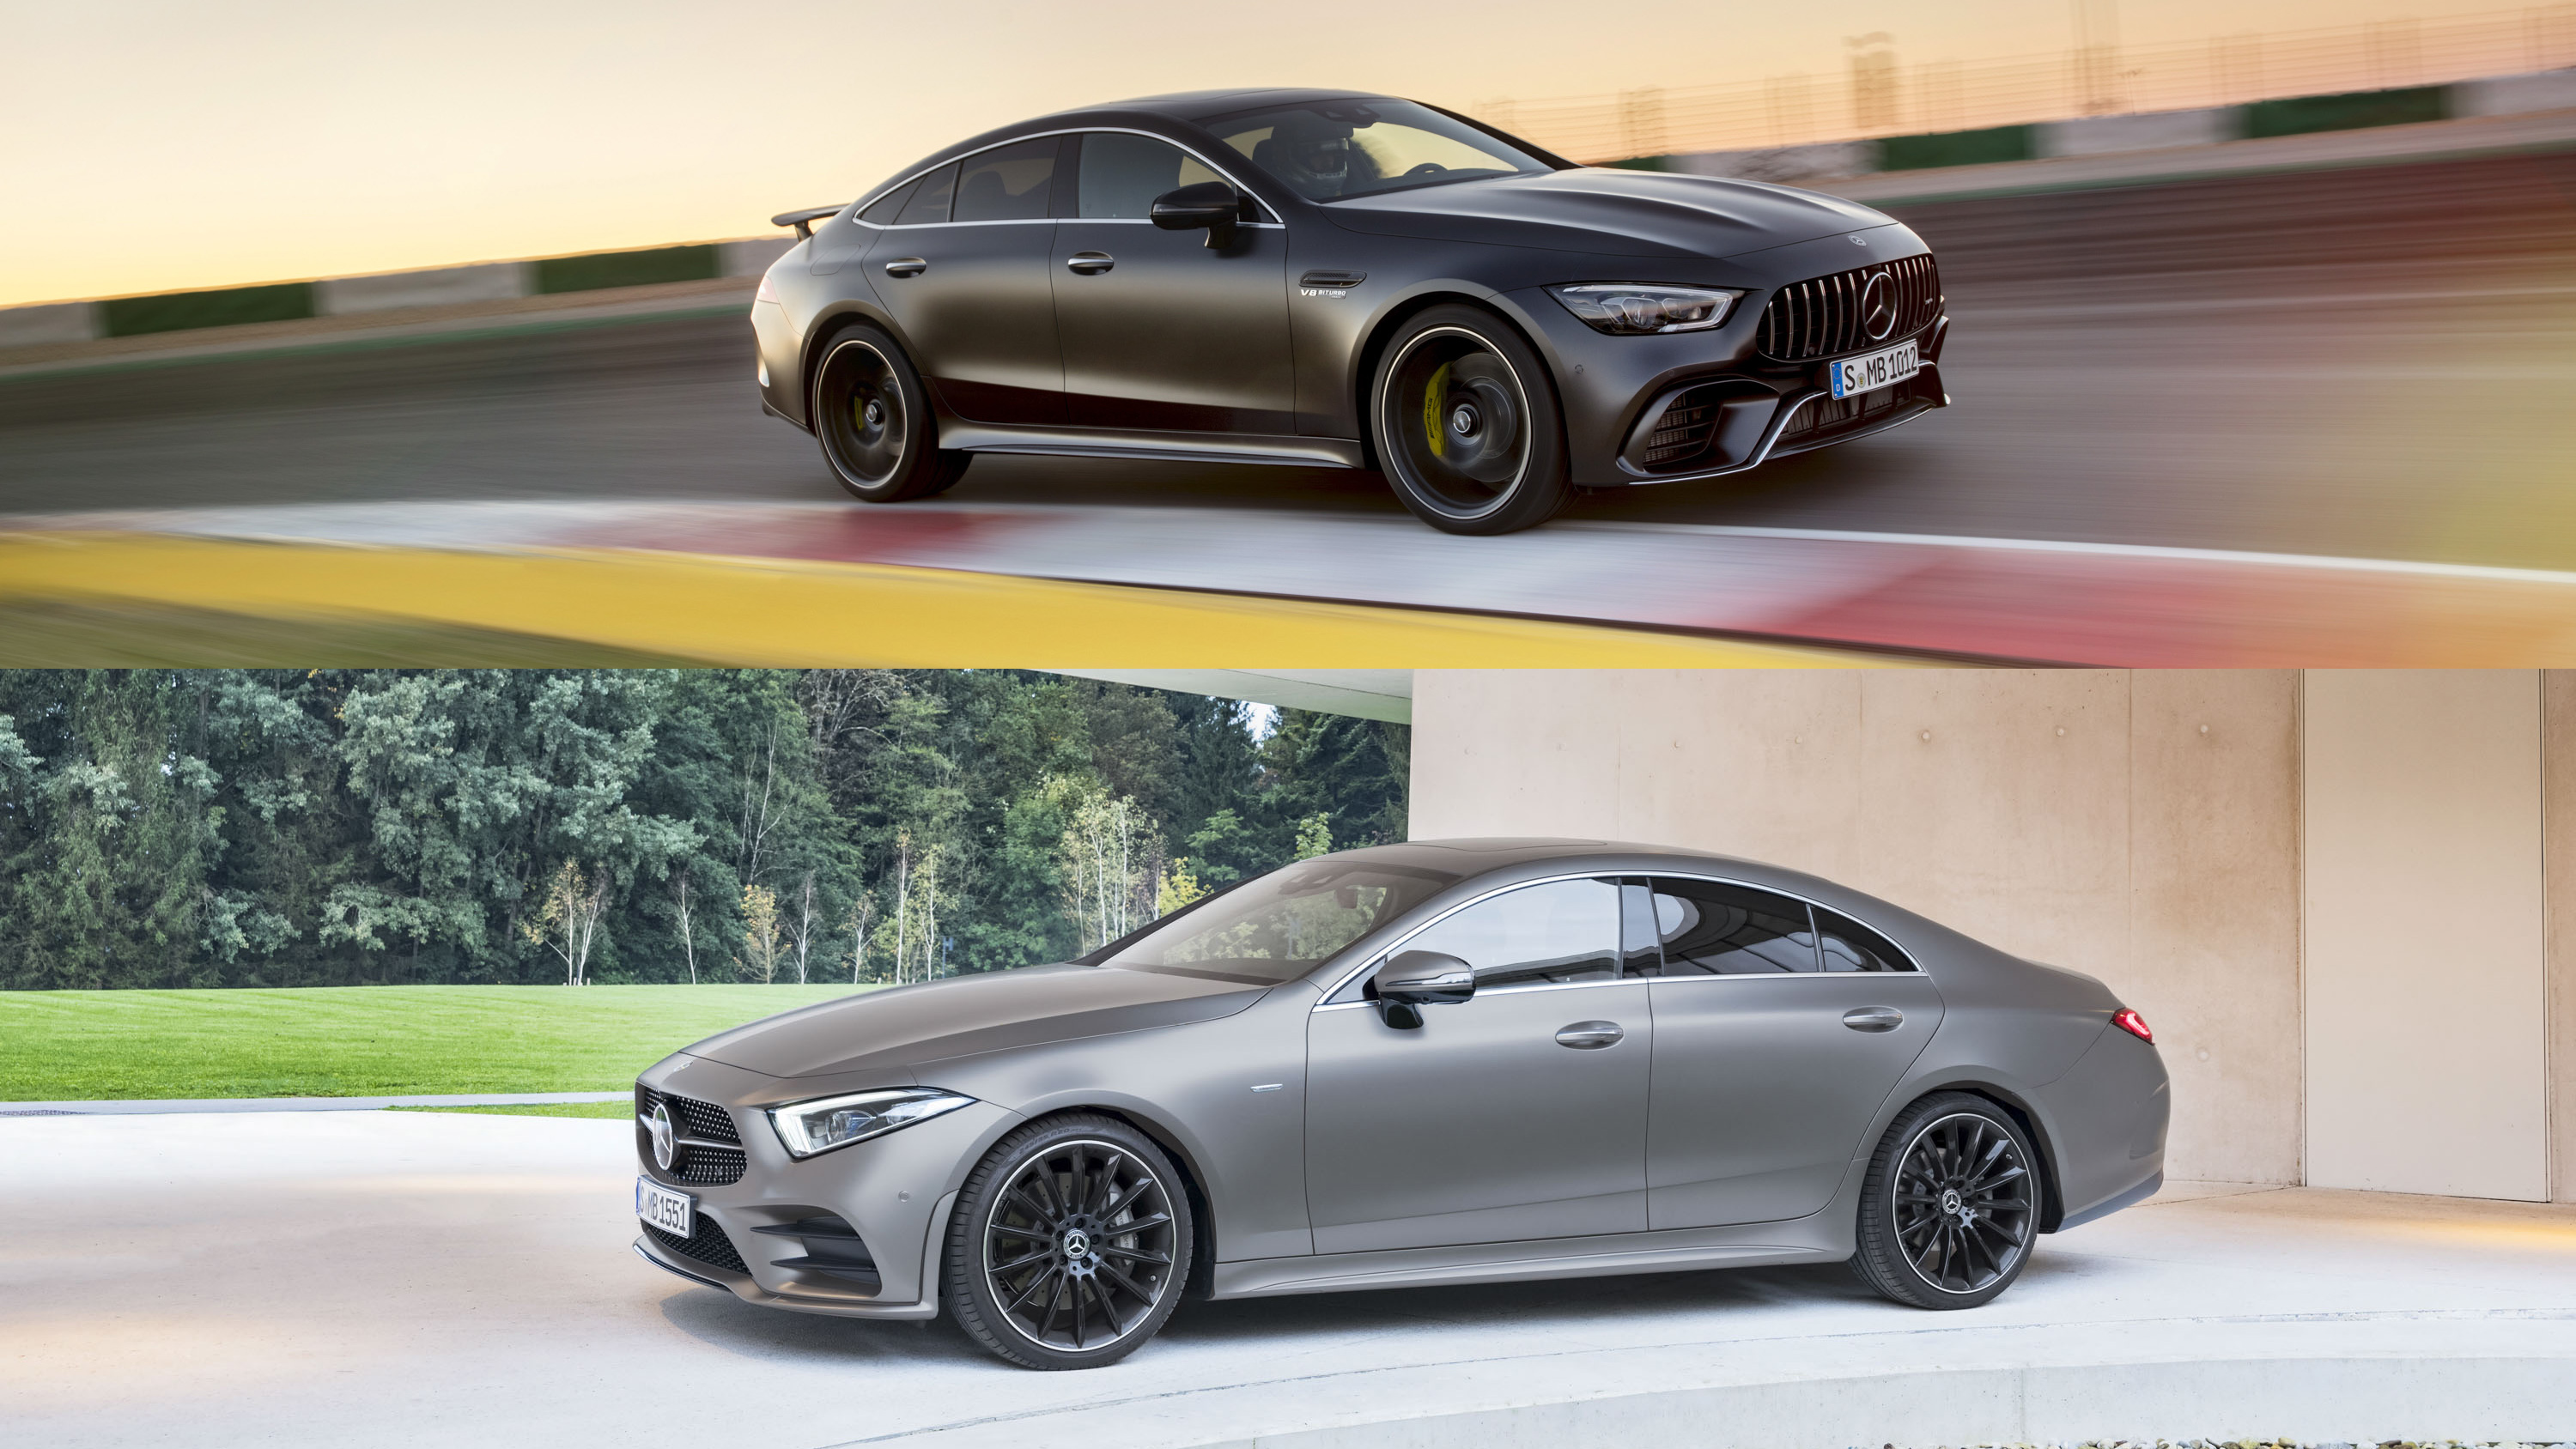 Sedan Vs Coupe >> Mercedes Amg Gt 4 Door Coupe Vs Mercedes Cls Here S What Sets Them